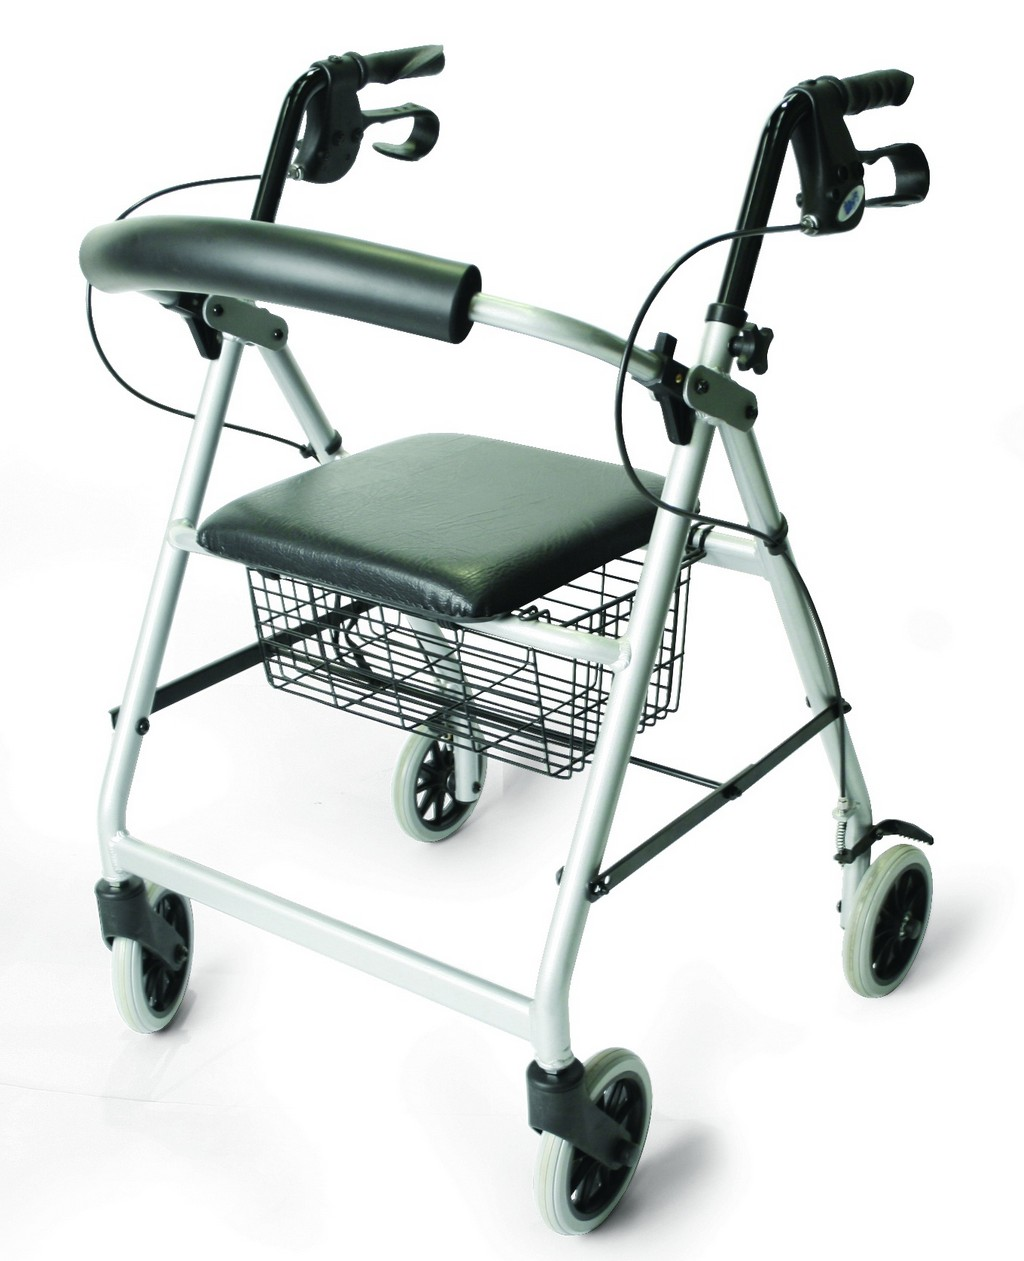 rollators for sale in poland, envoy 480 blue rollator walker, lumex rollator parts, drive rollator model r726